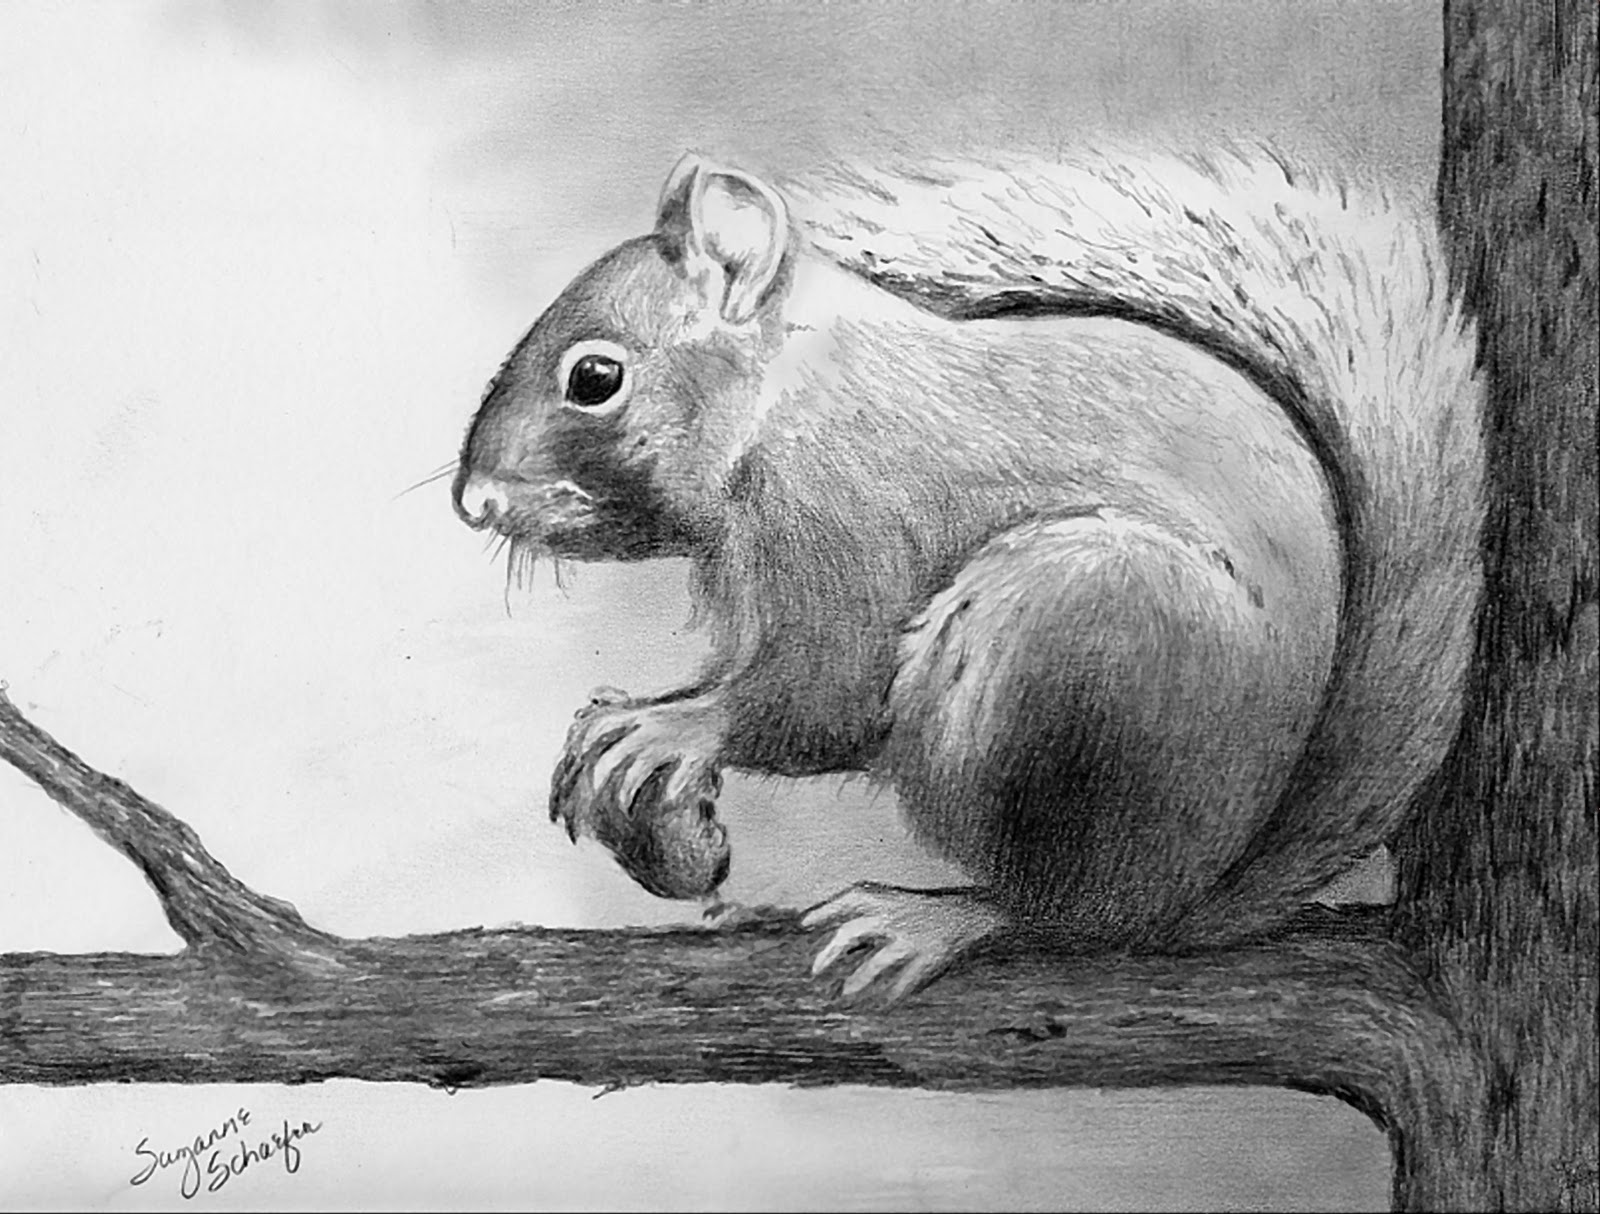 Drawn rodent pencil drawing Drawings Collections: Drawings Draw Pencil